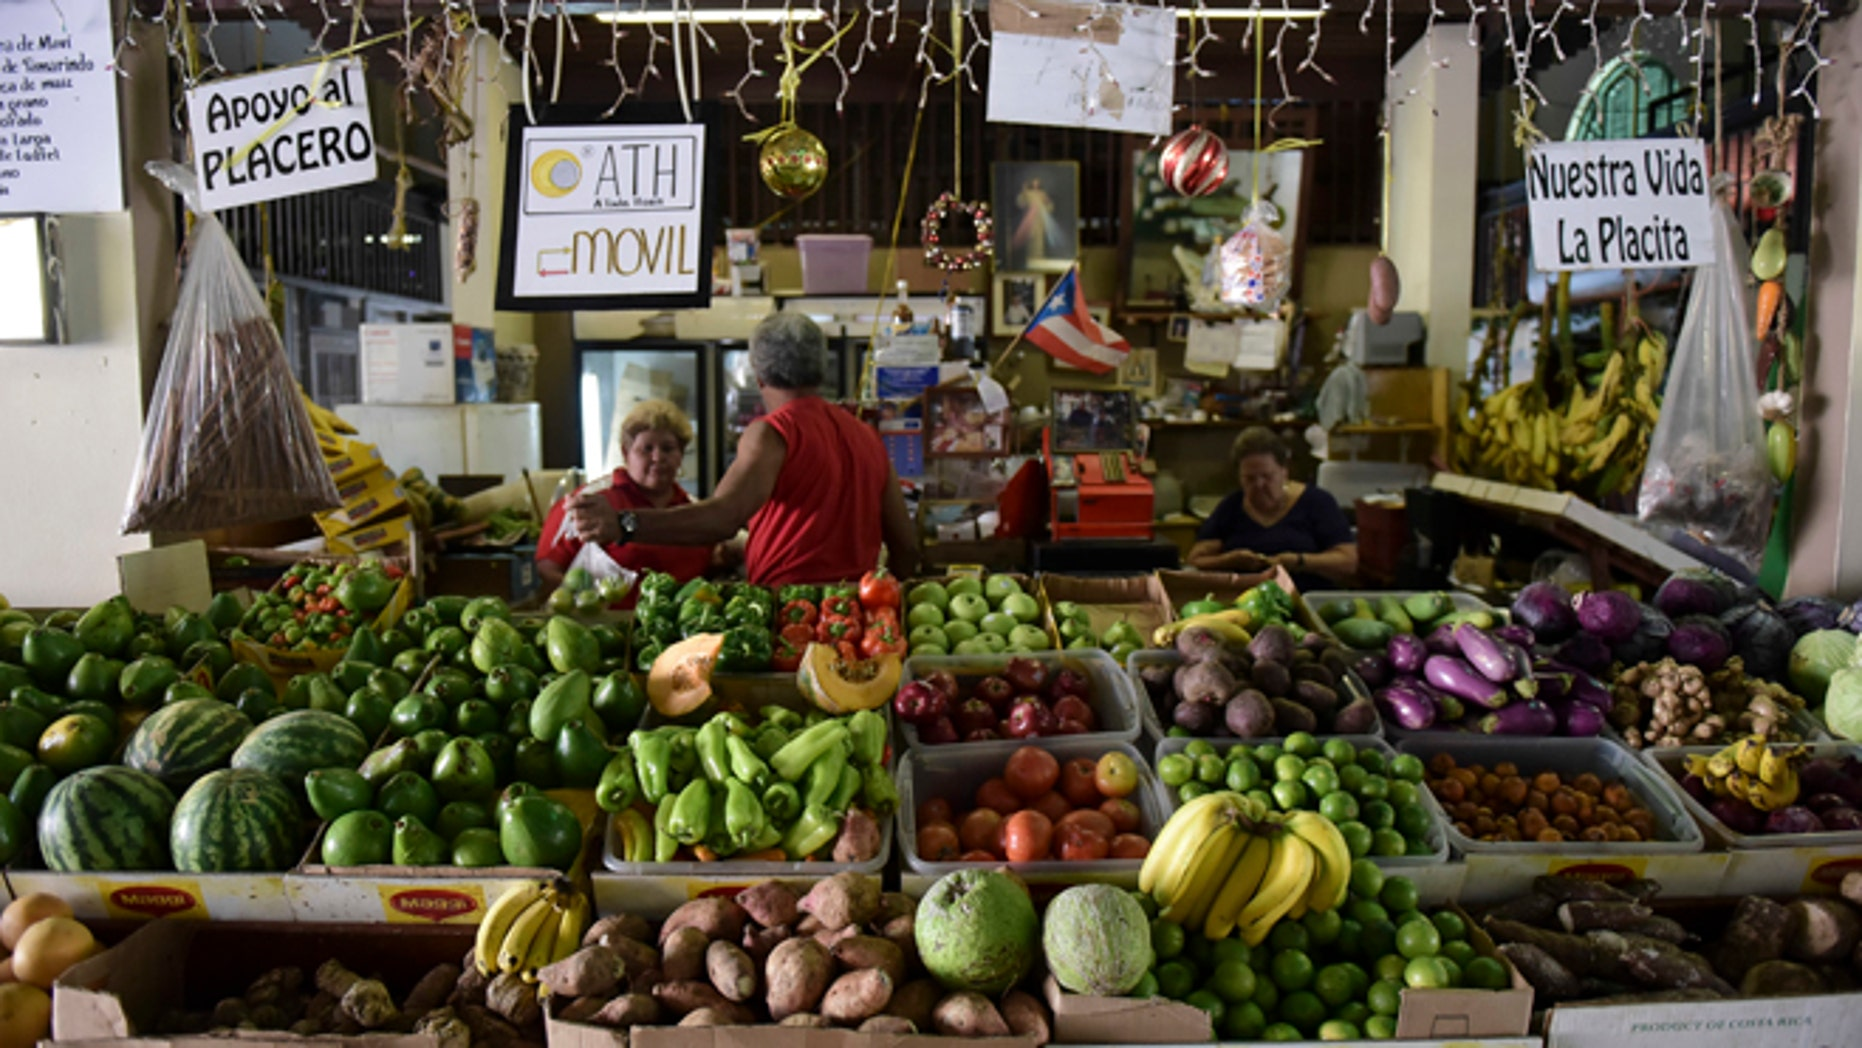 Produce stand at La Placita de Santurce farmers' market, which sells mostly locally grown produce in San Juan, Puerto Rico.